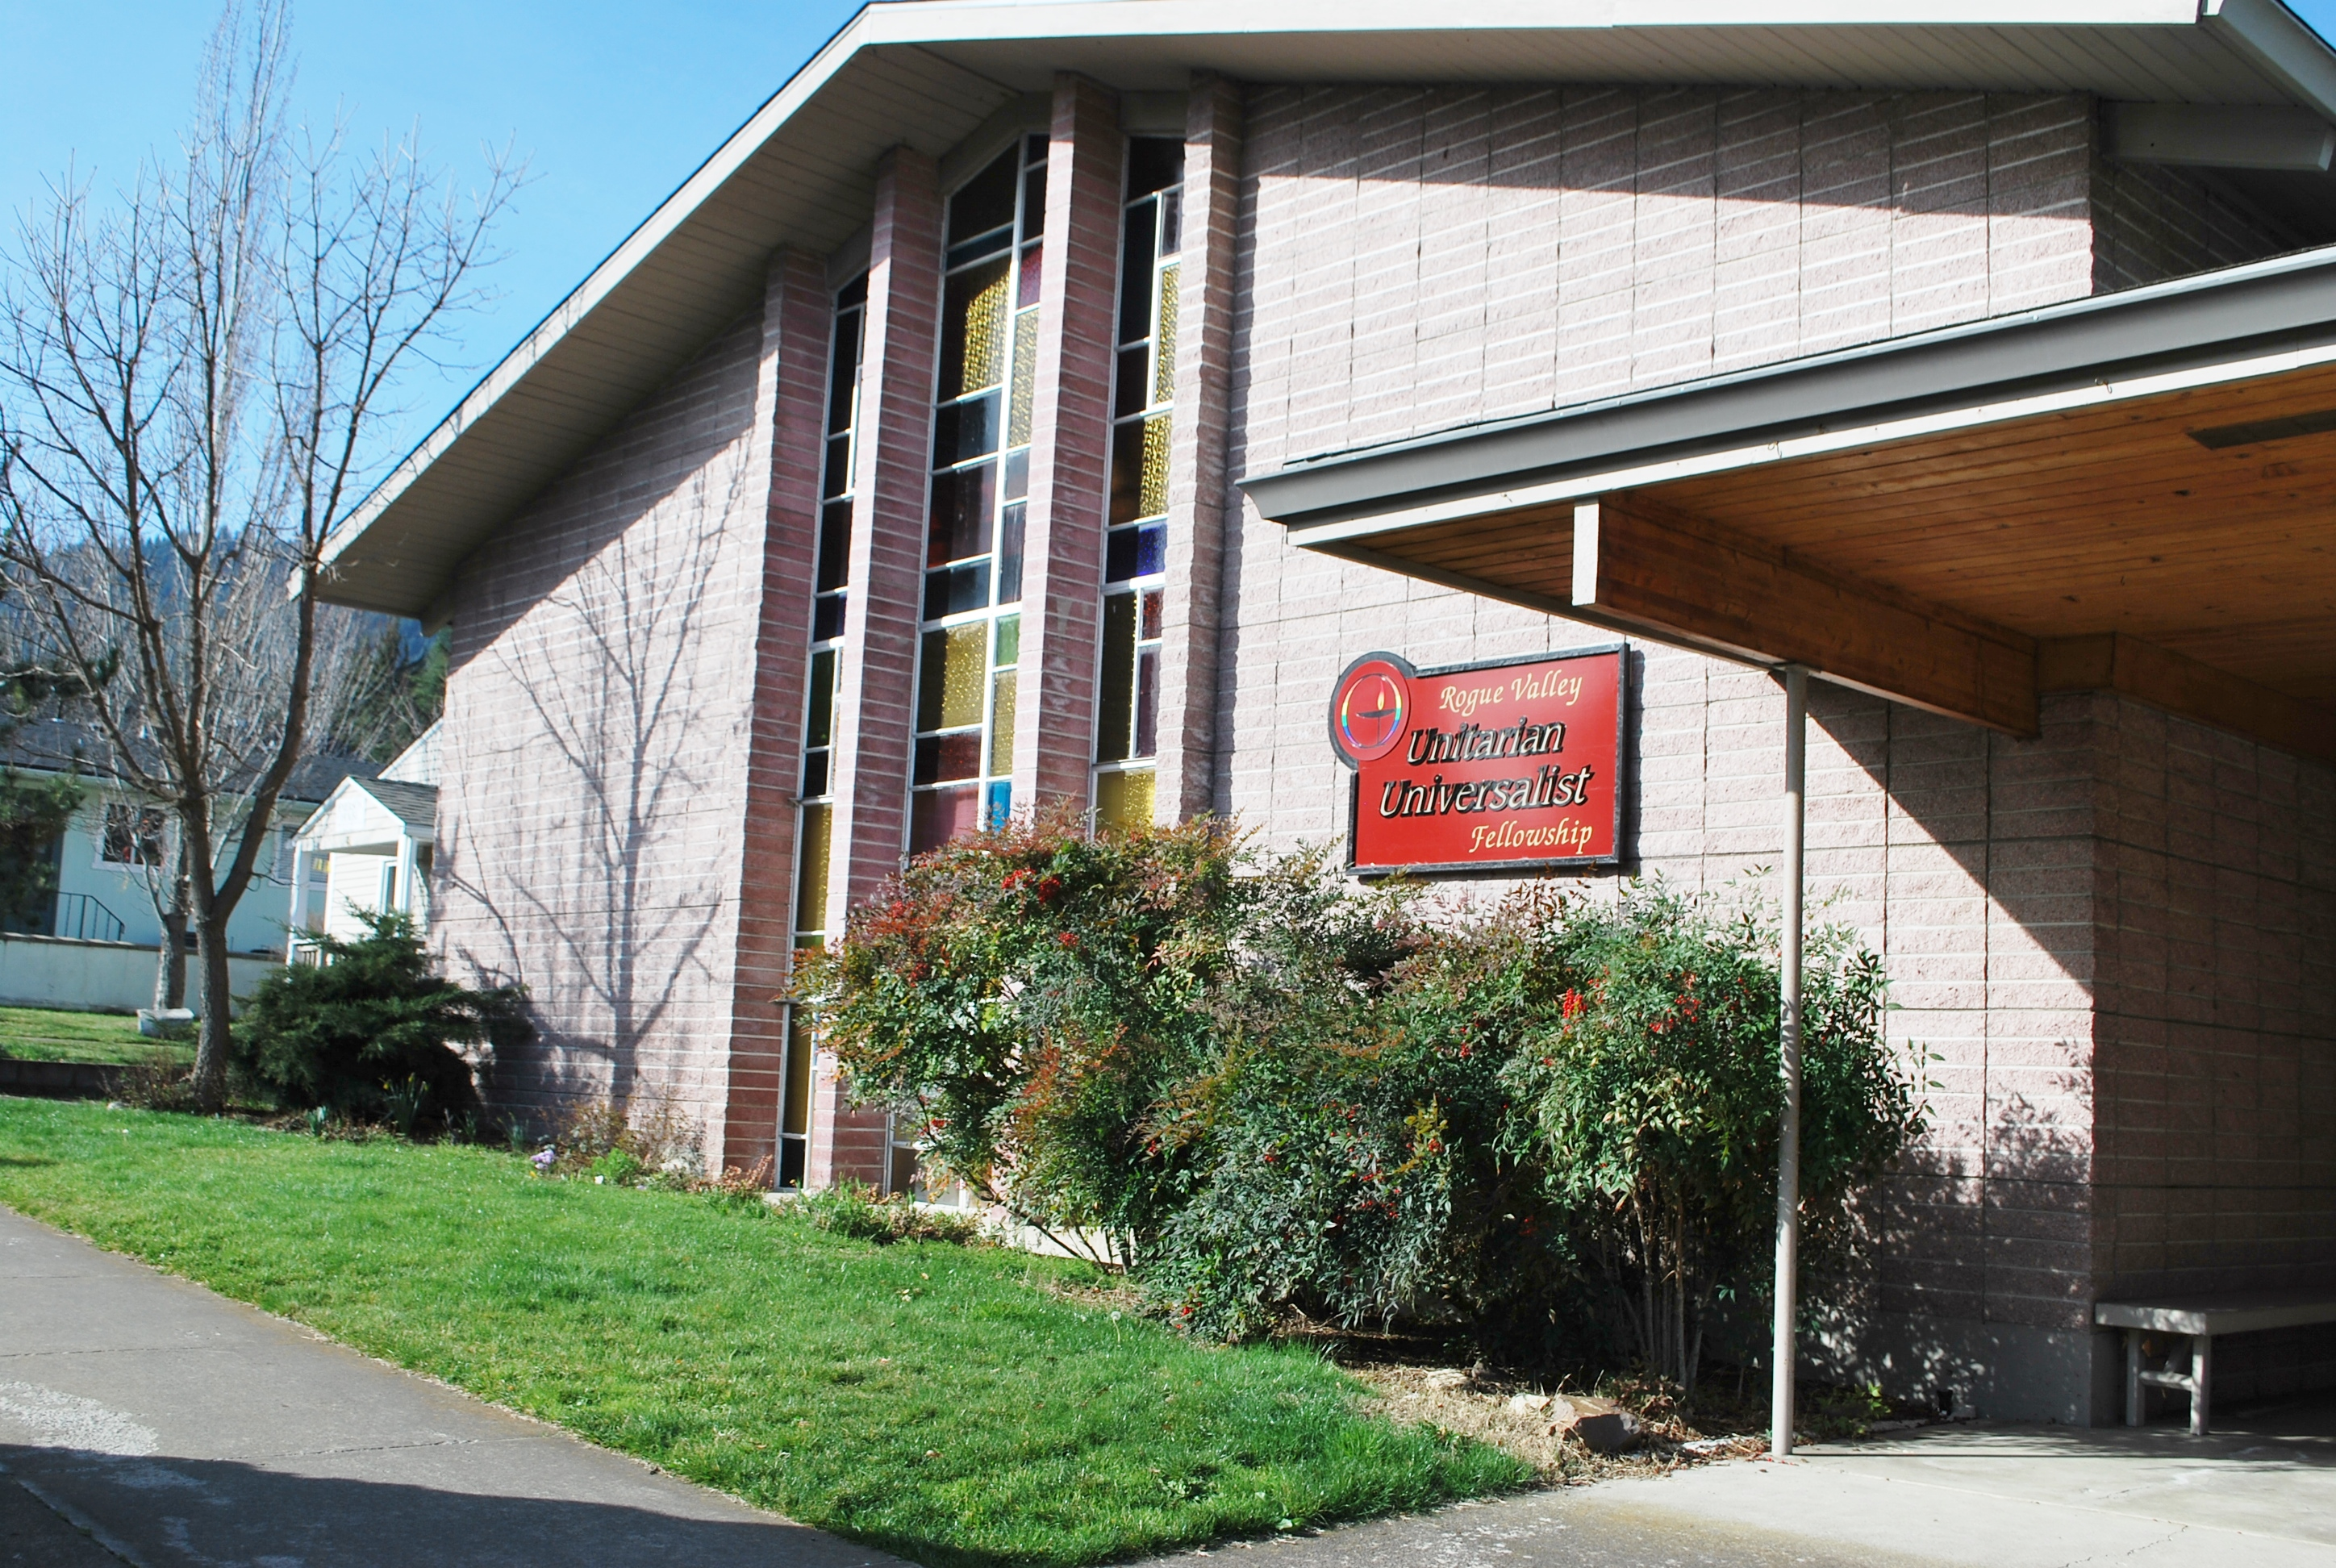 Exterior view, front of Rogue Valley Unitarian Universalist Fellowship